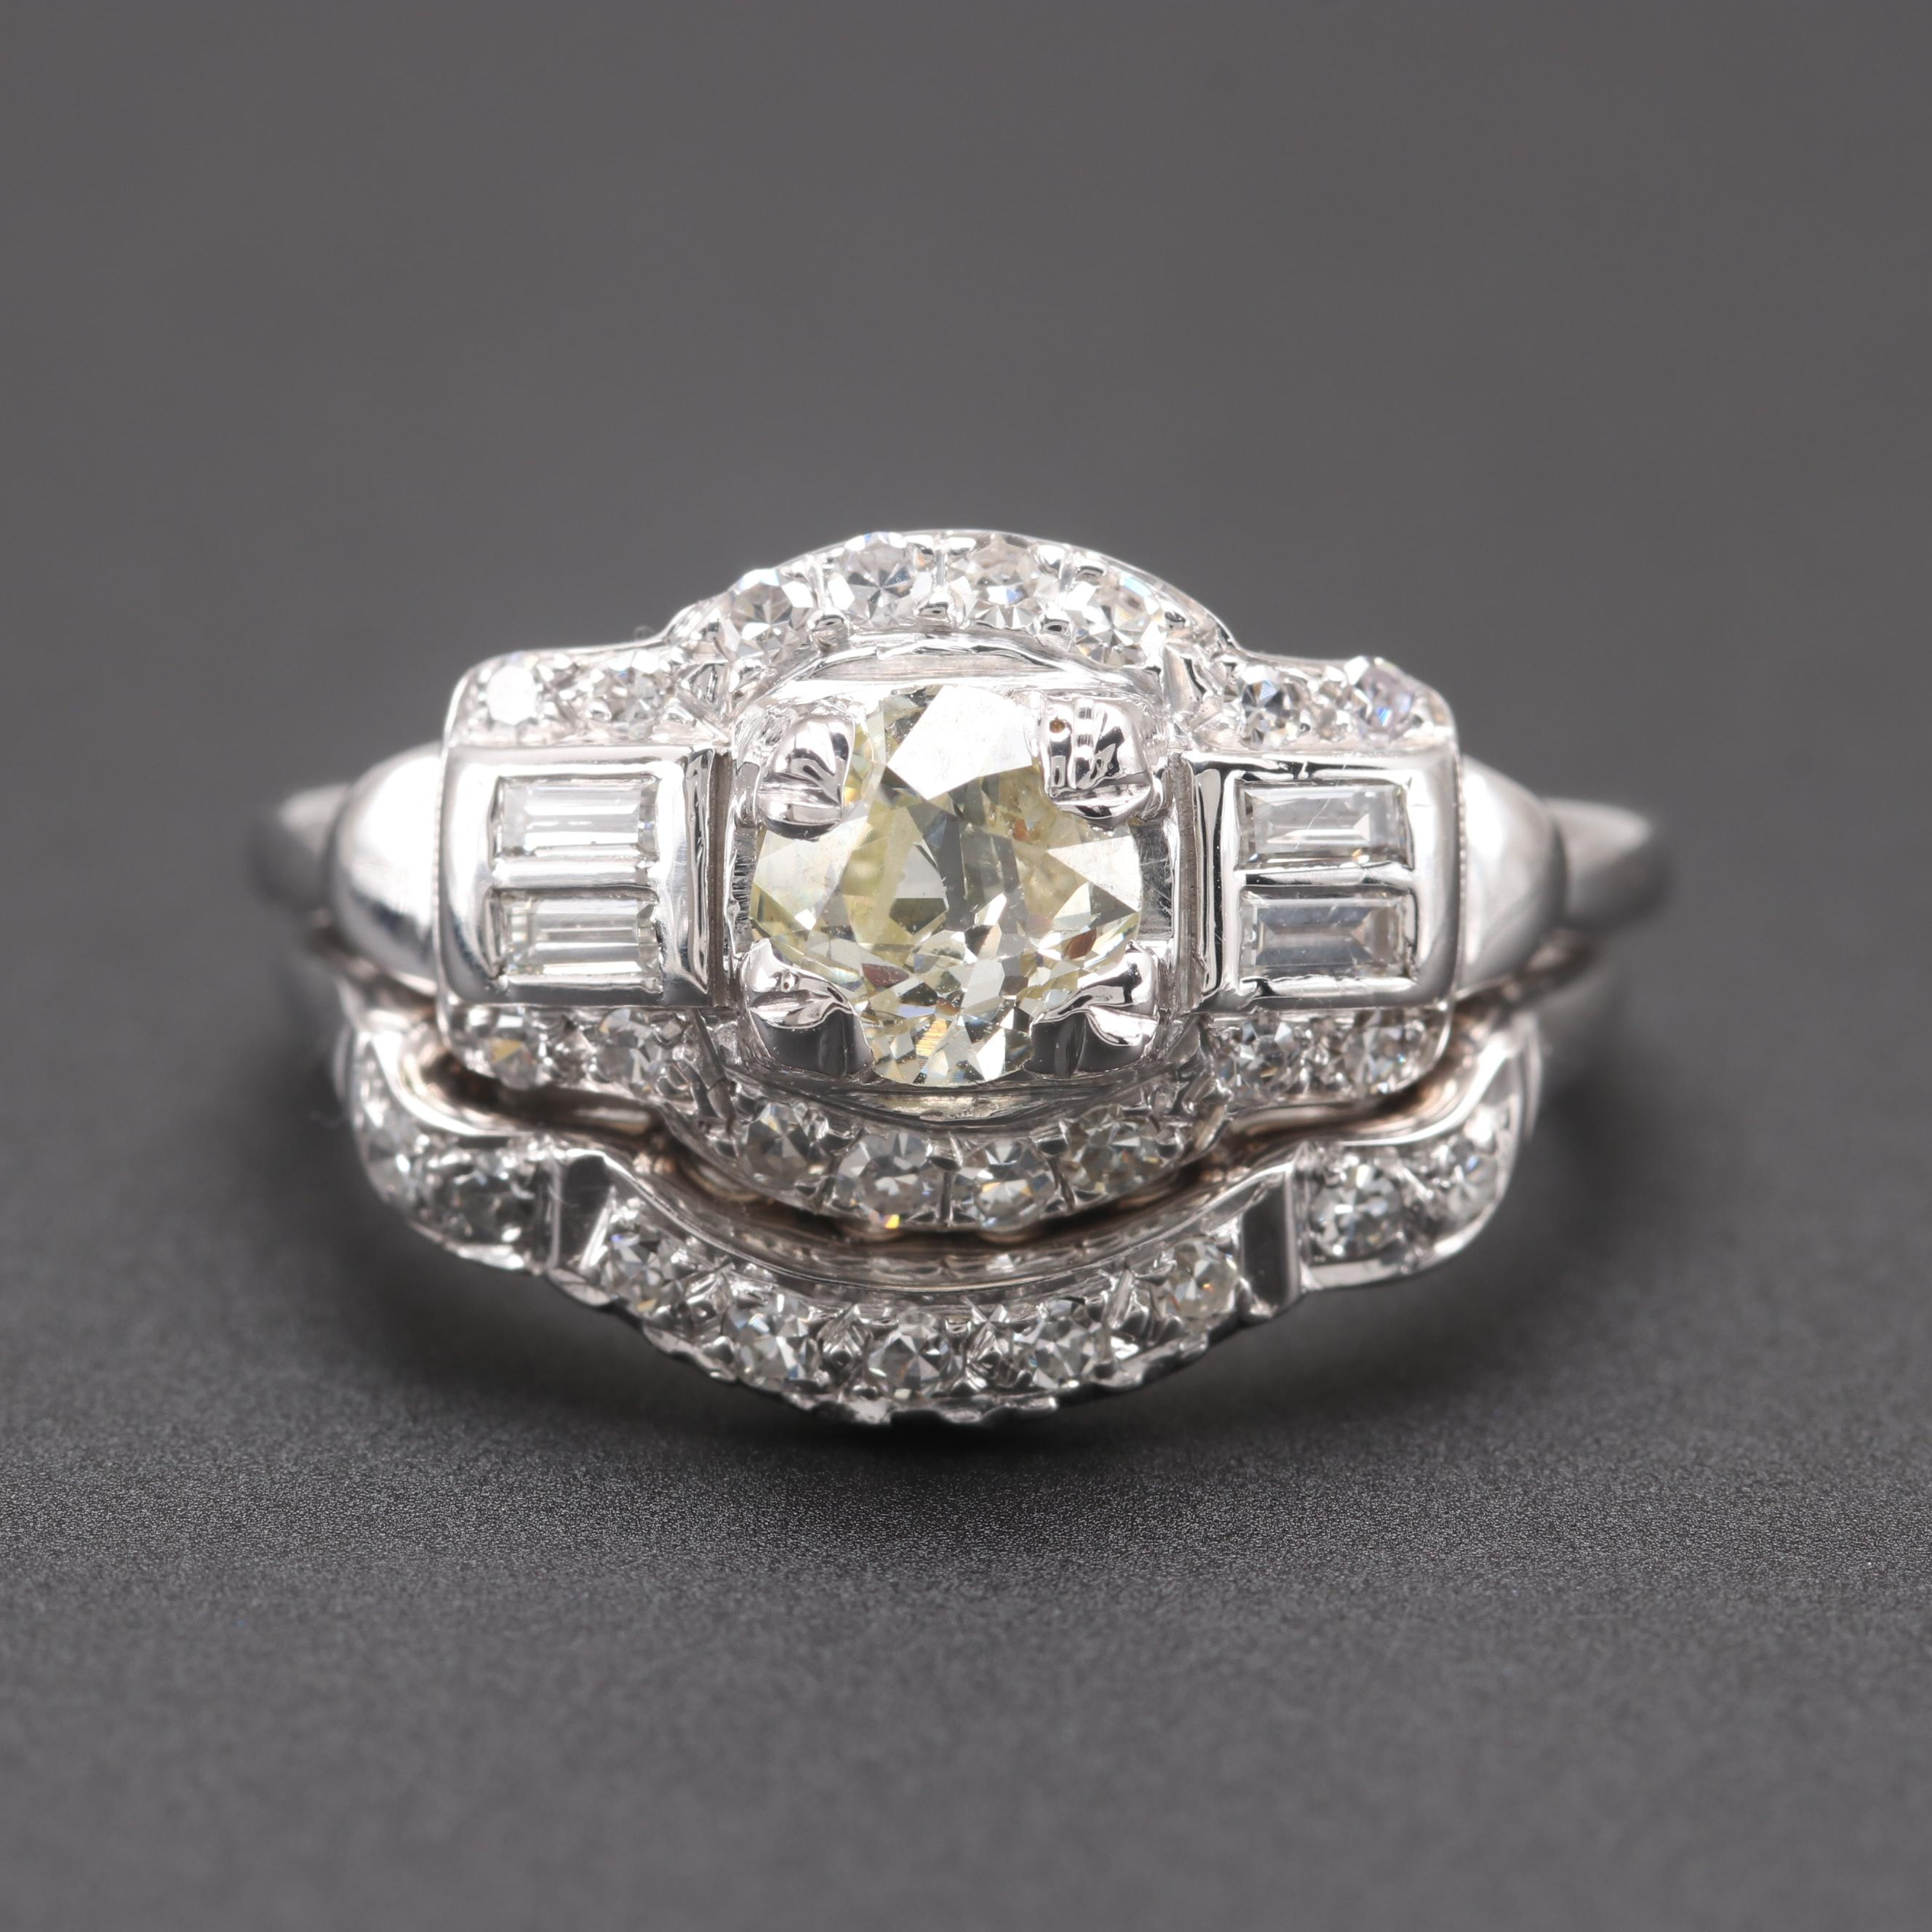 Circa 1940s 14K White Gold 1.06 CTW Diamond Wedding Ring Set